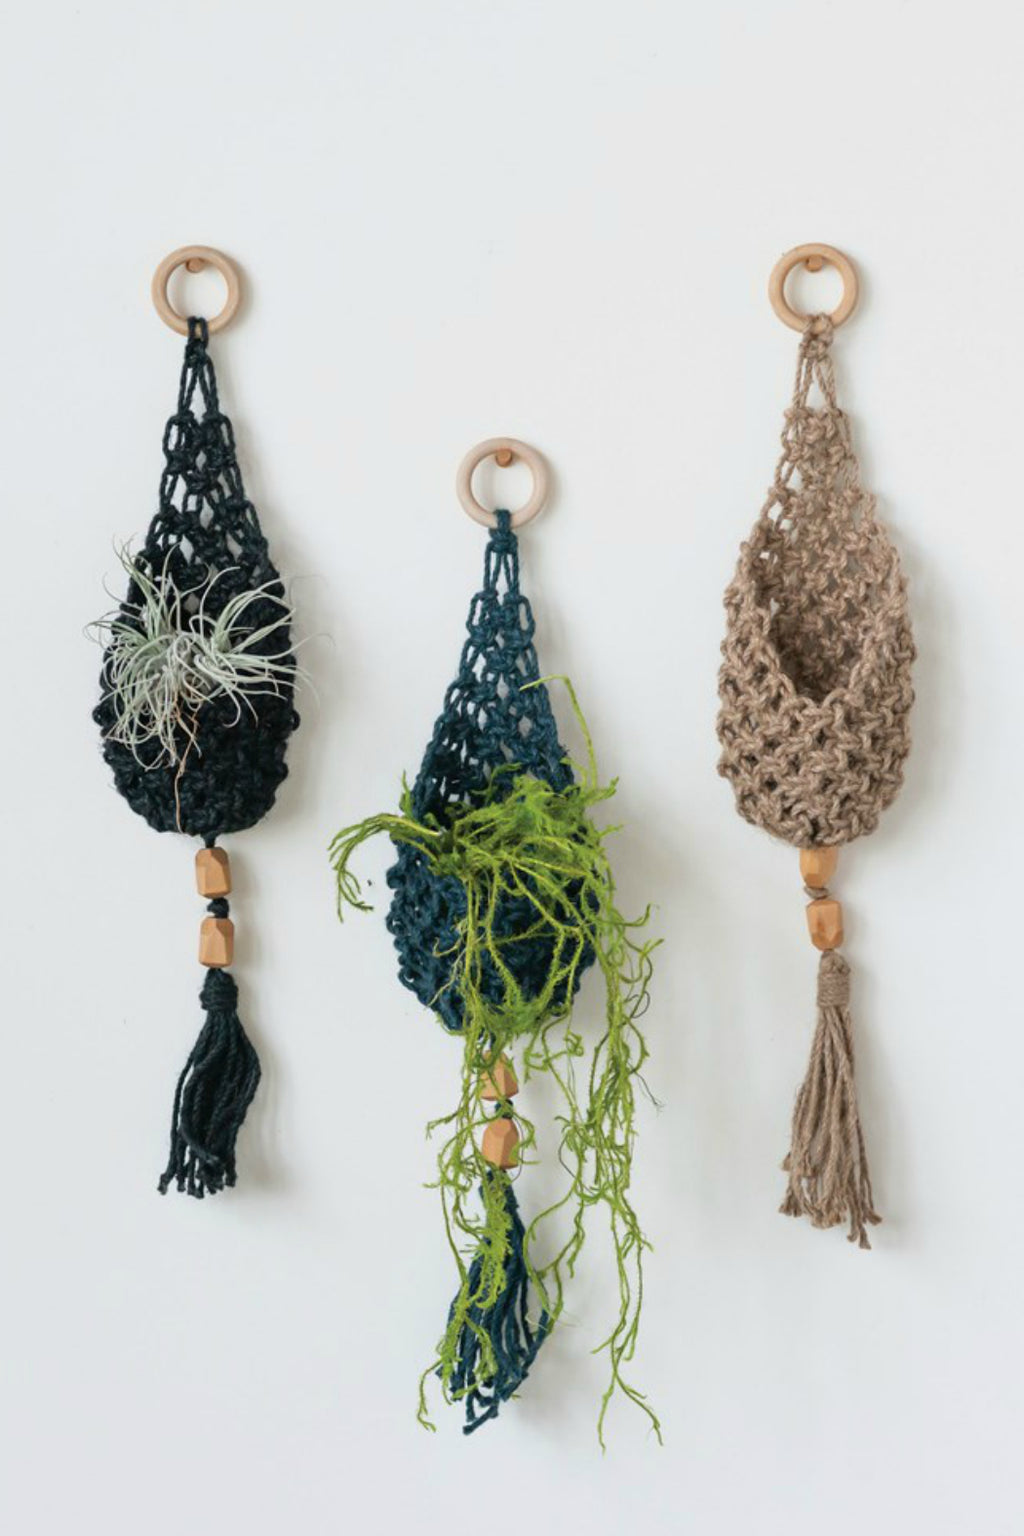 Creative Co-op Woven Jute Wall Hanging Pocket